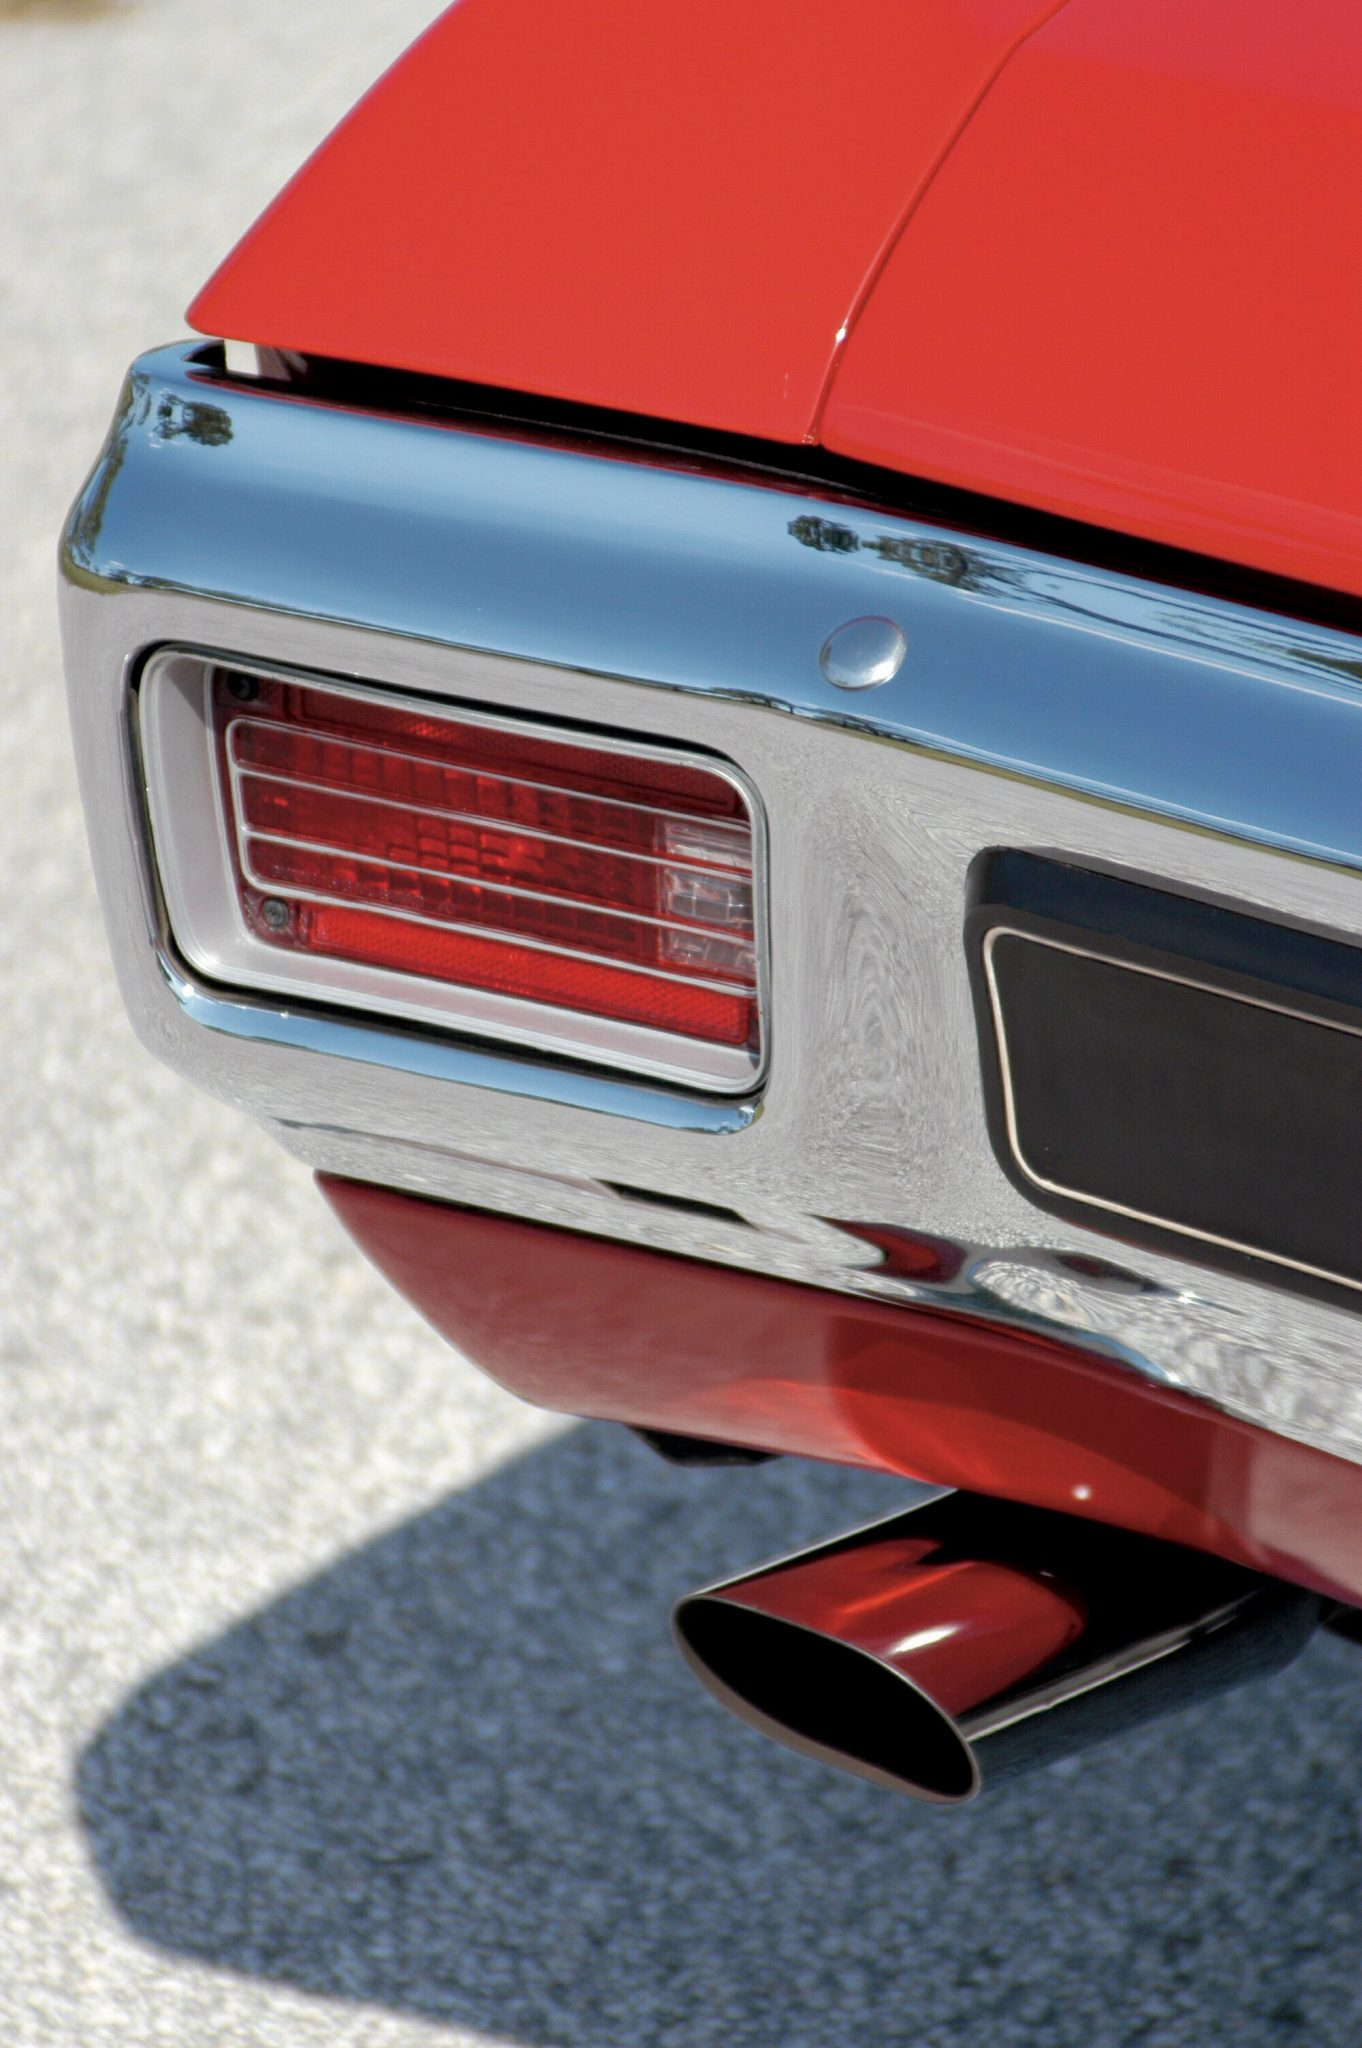 The Ultimate Muscle Car The 1970 Ls6 Chevelle Was America S King